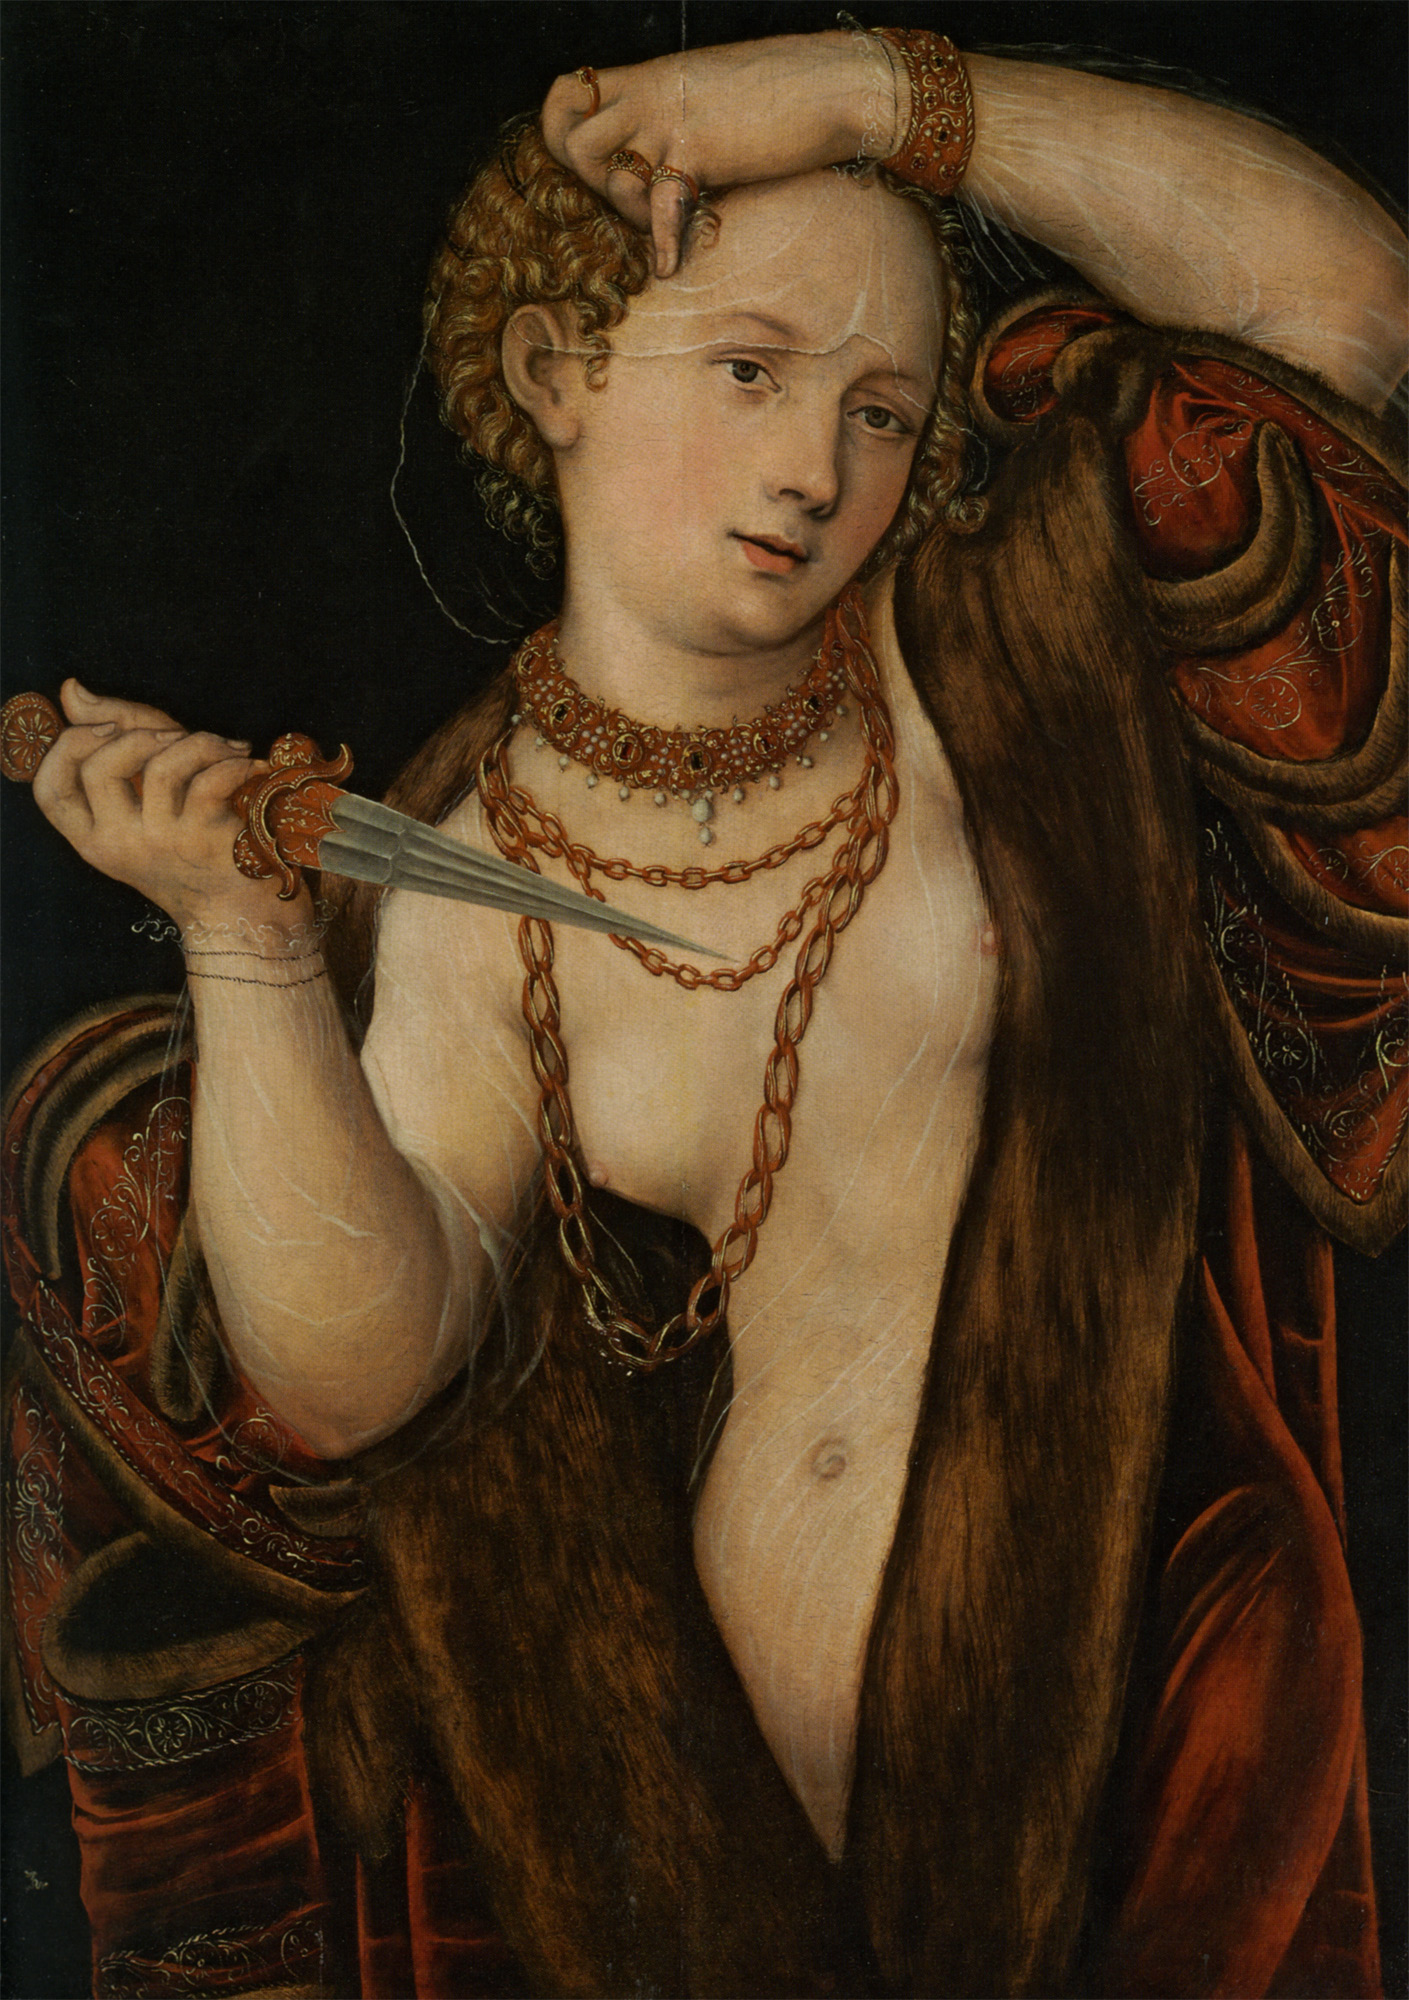 Lucretia :: Lucas Cranach the Younger - 2 women portraits 16th century hall ôîòî